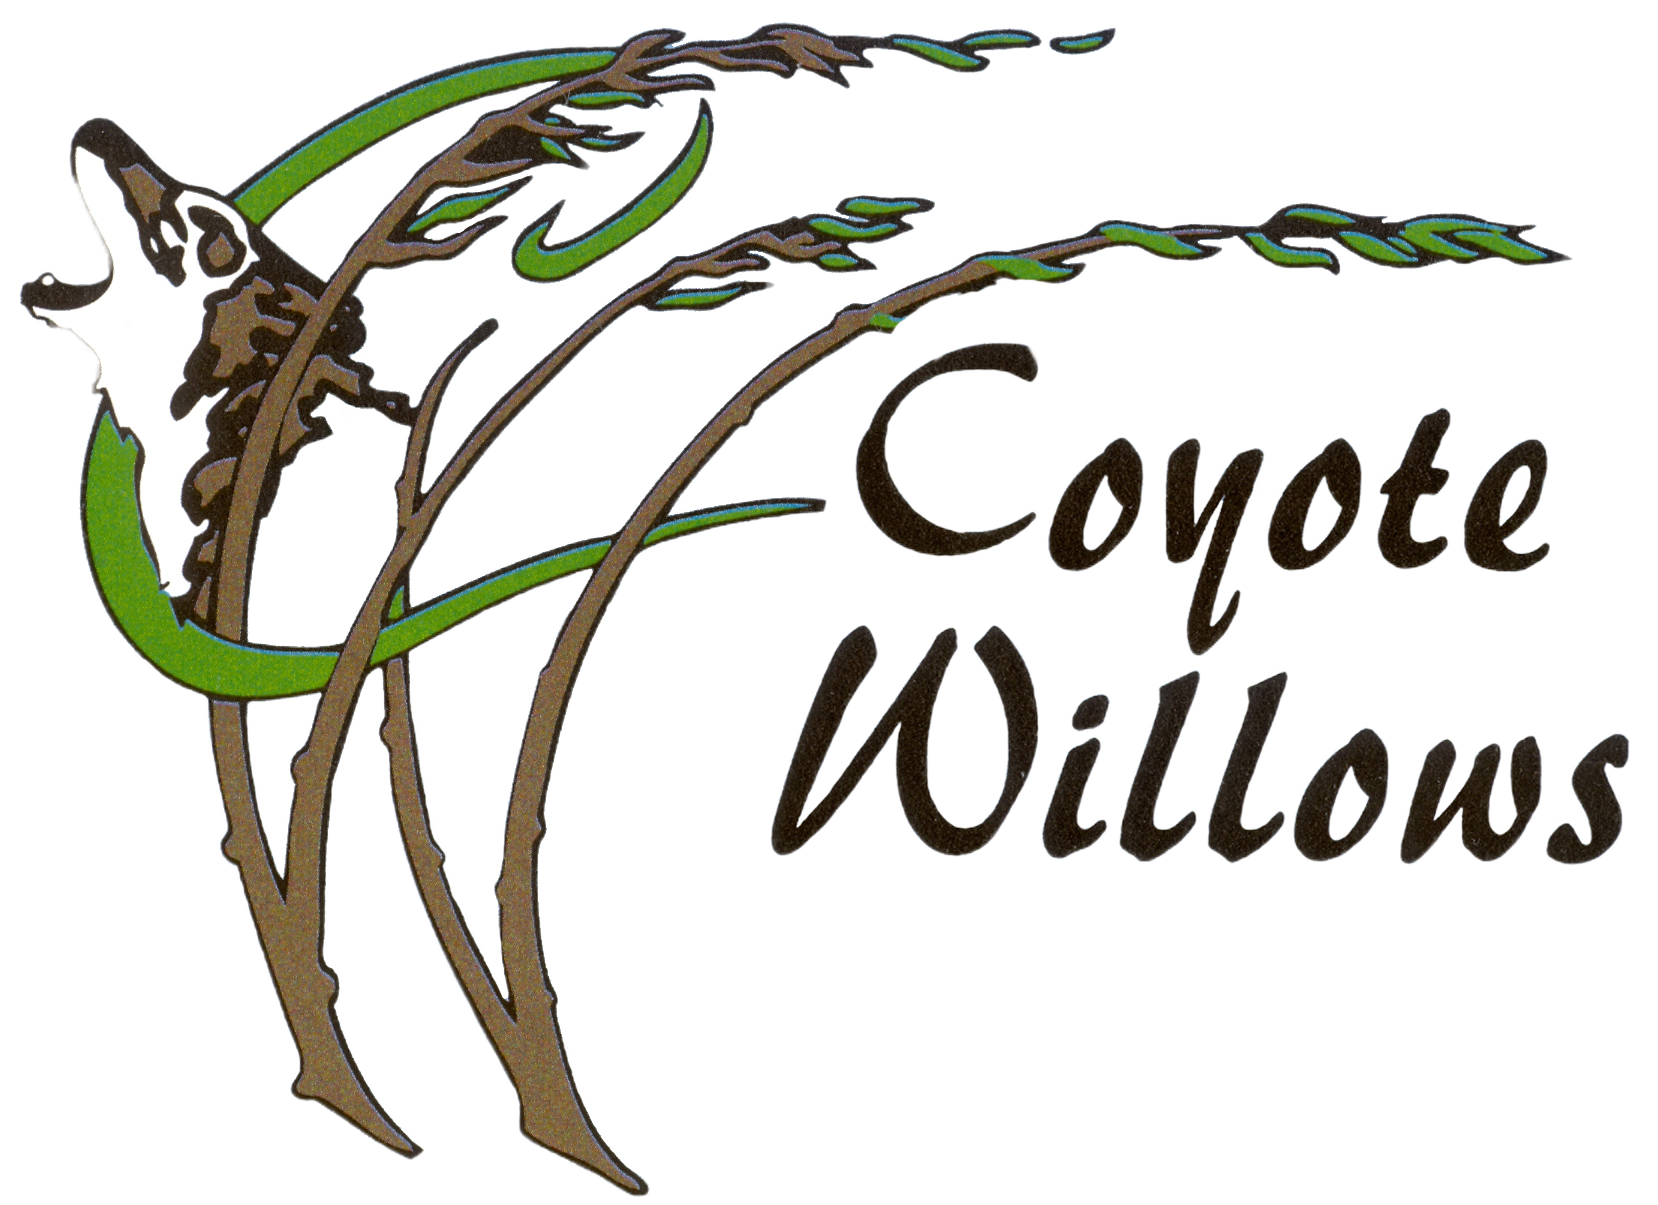 Coyote Willows Golf